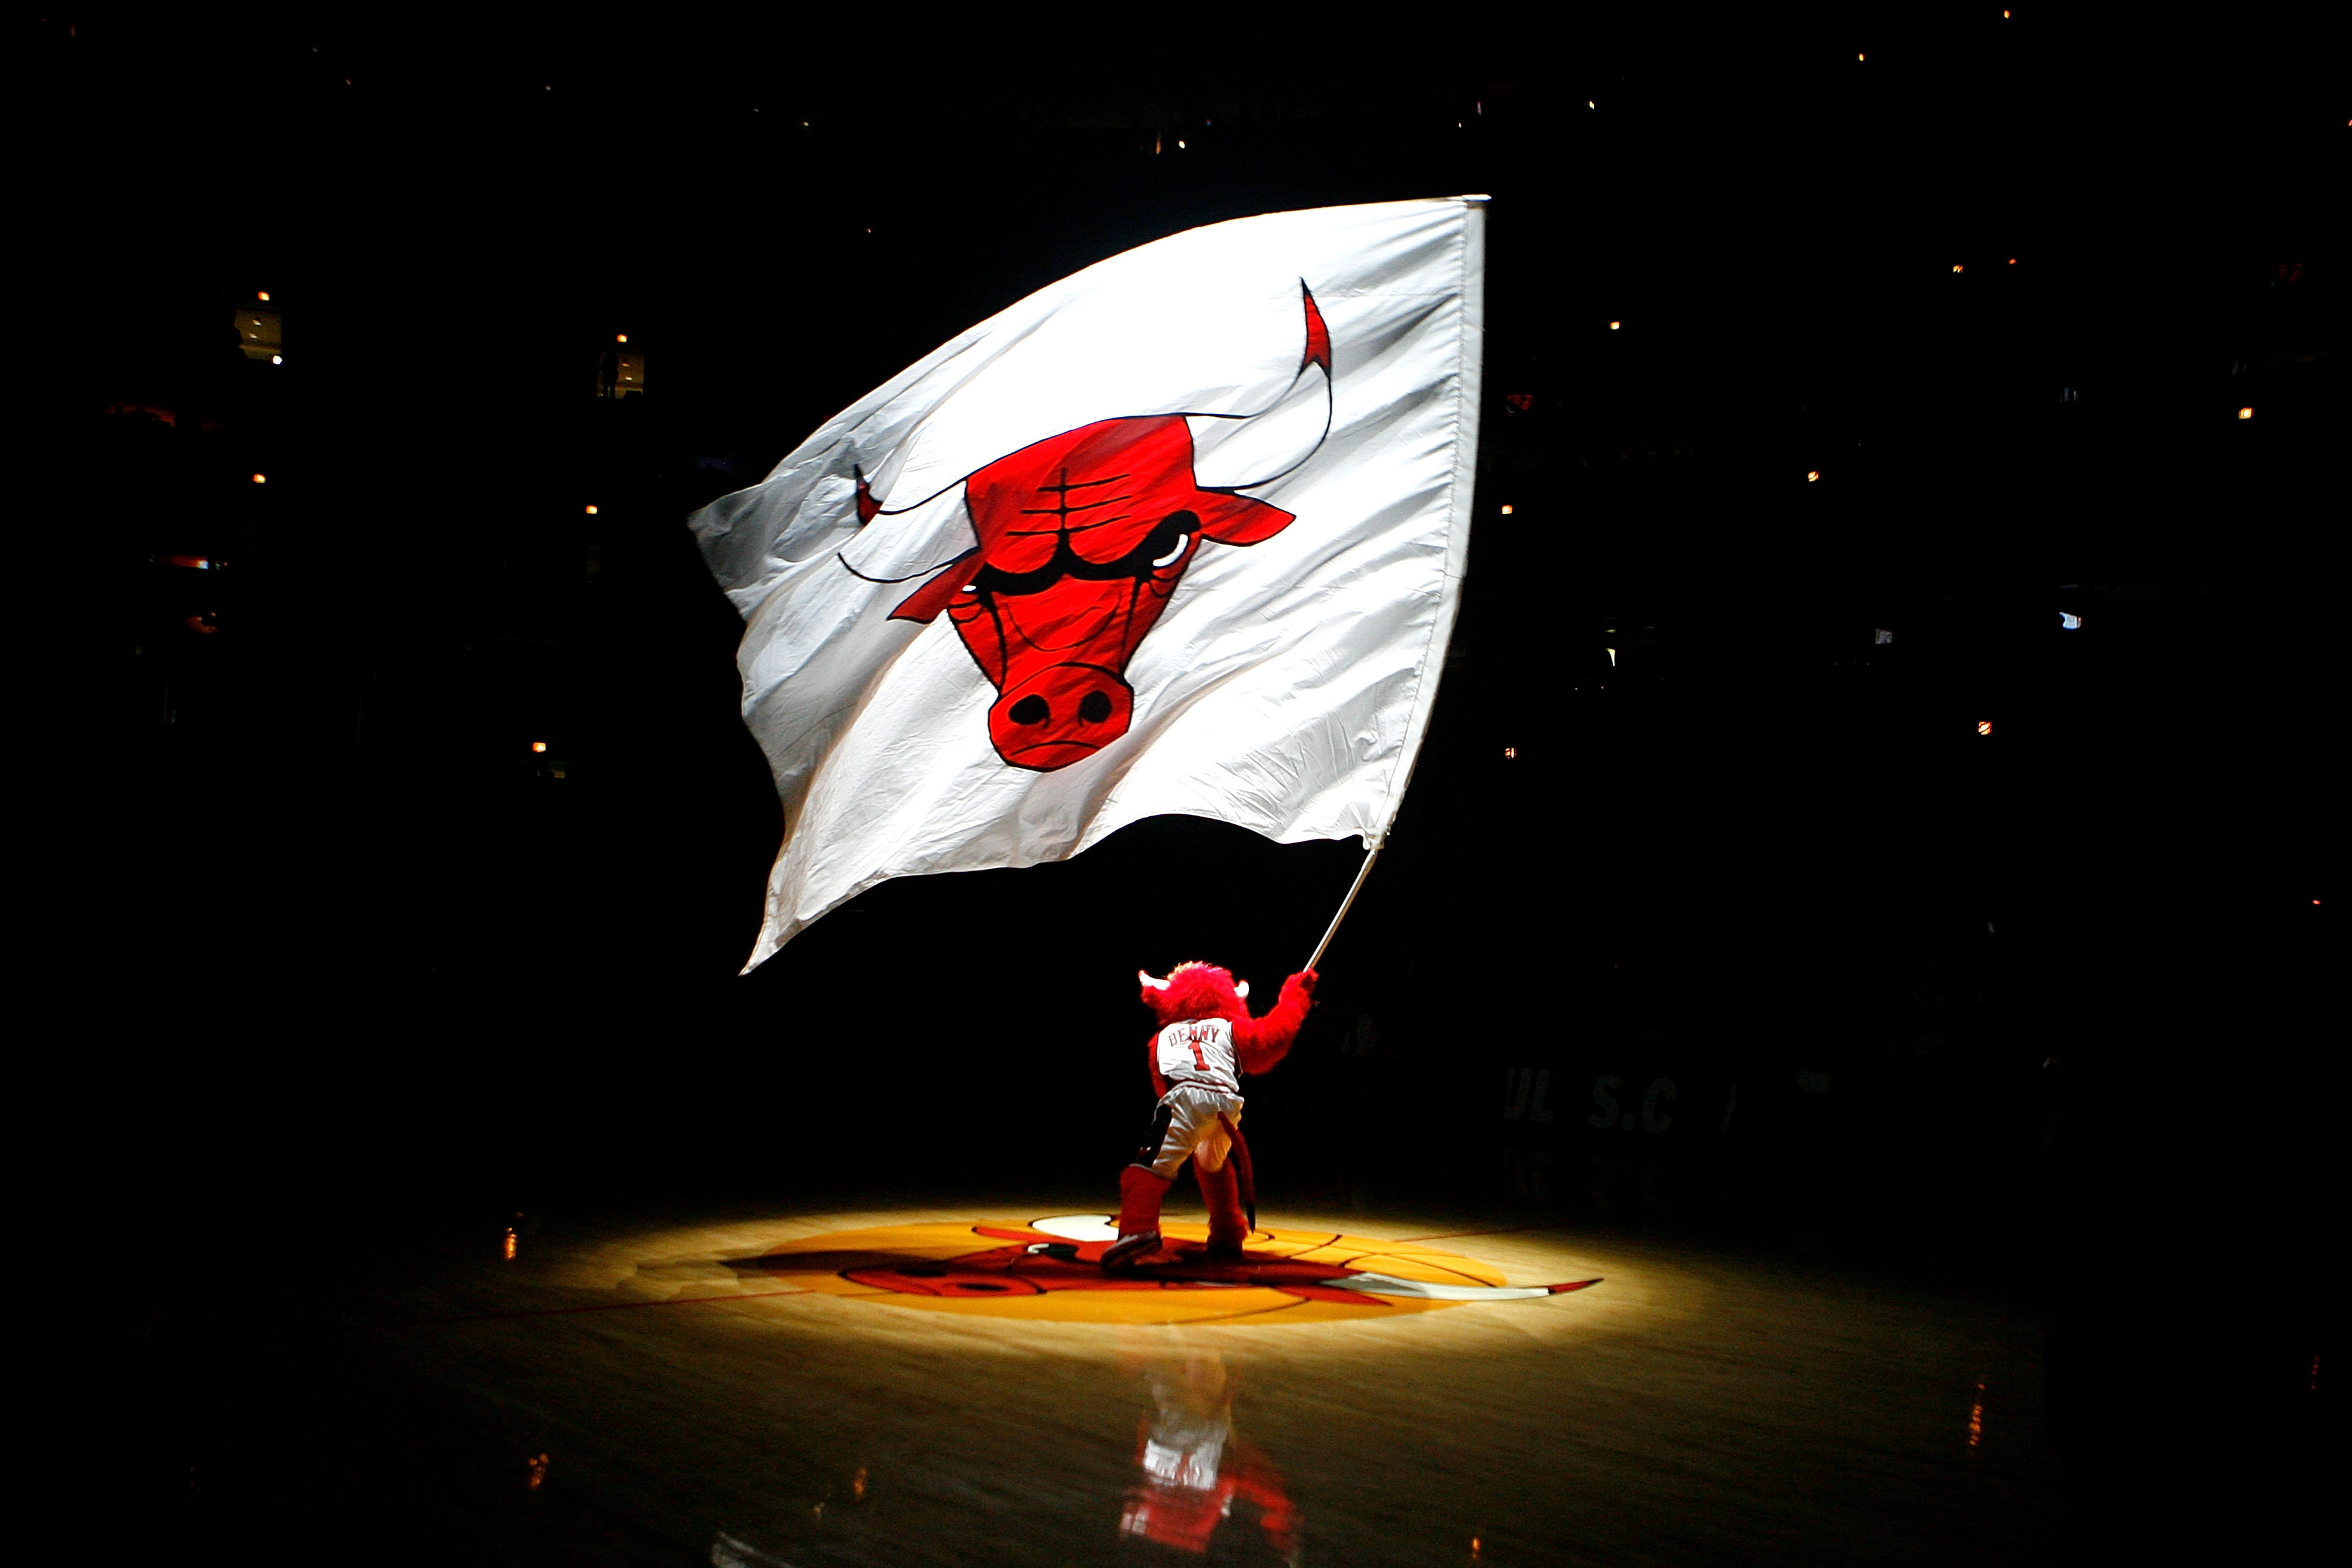 Benny the Bull, mascot for the Chicago Bulls, waves a giant flag with the Bulls' logo on it